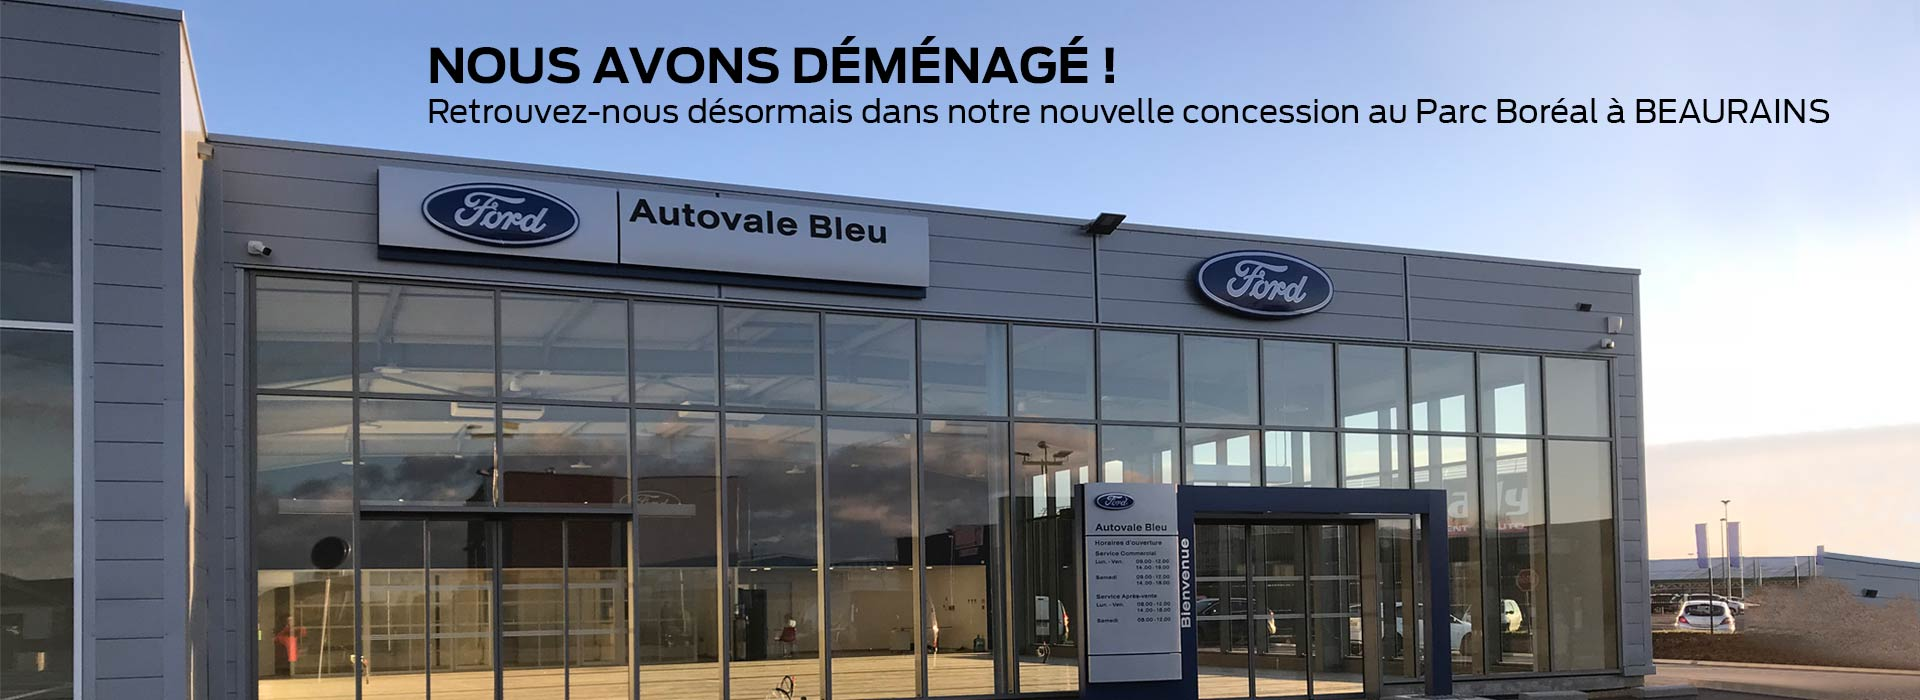 Ford arras concessionnaire garage pas de calais 62 for Garage ford ploermel occasion